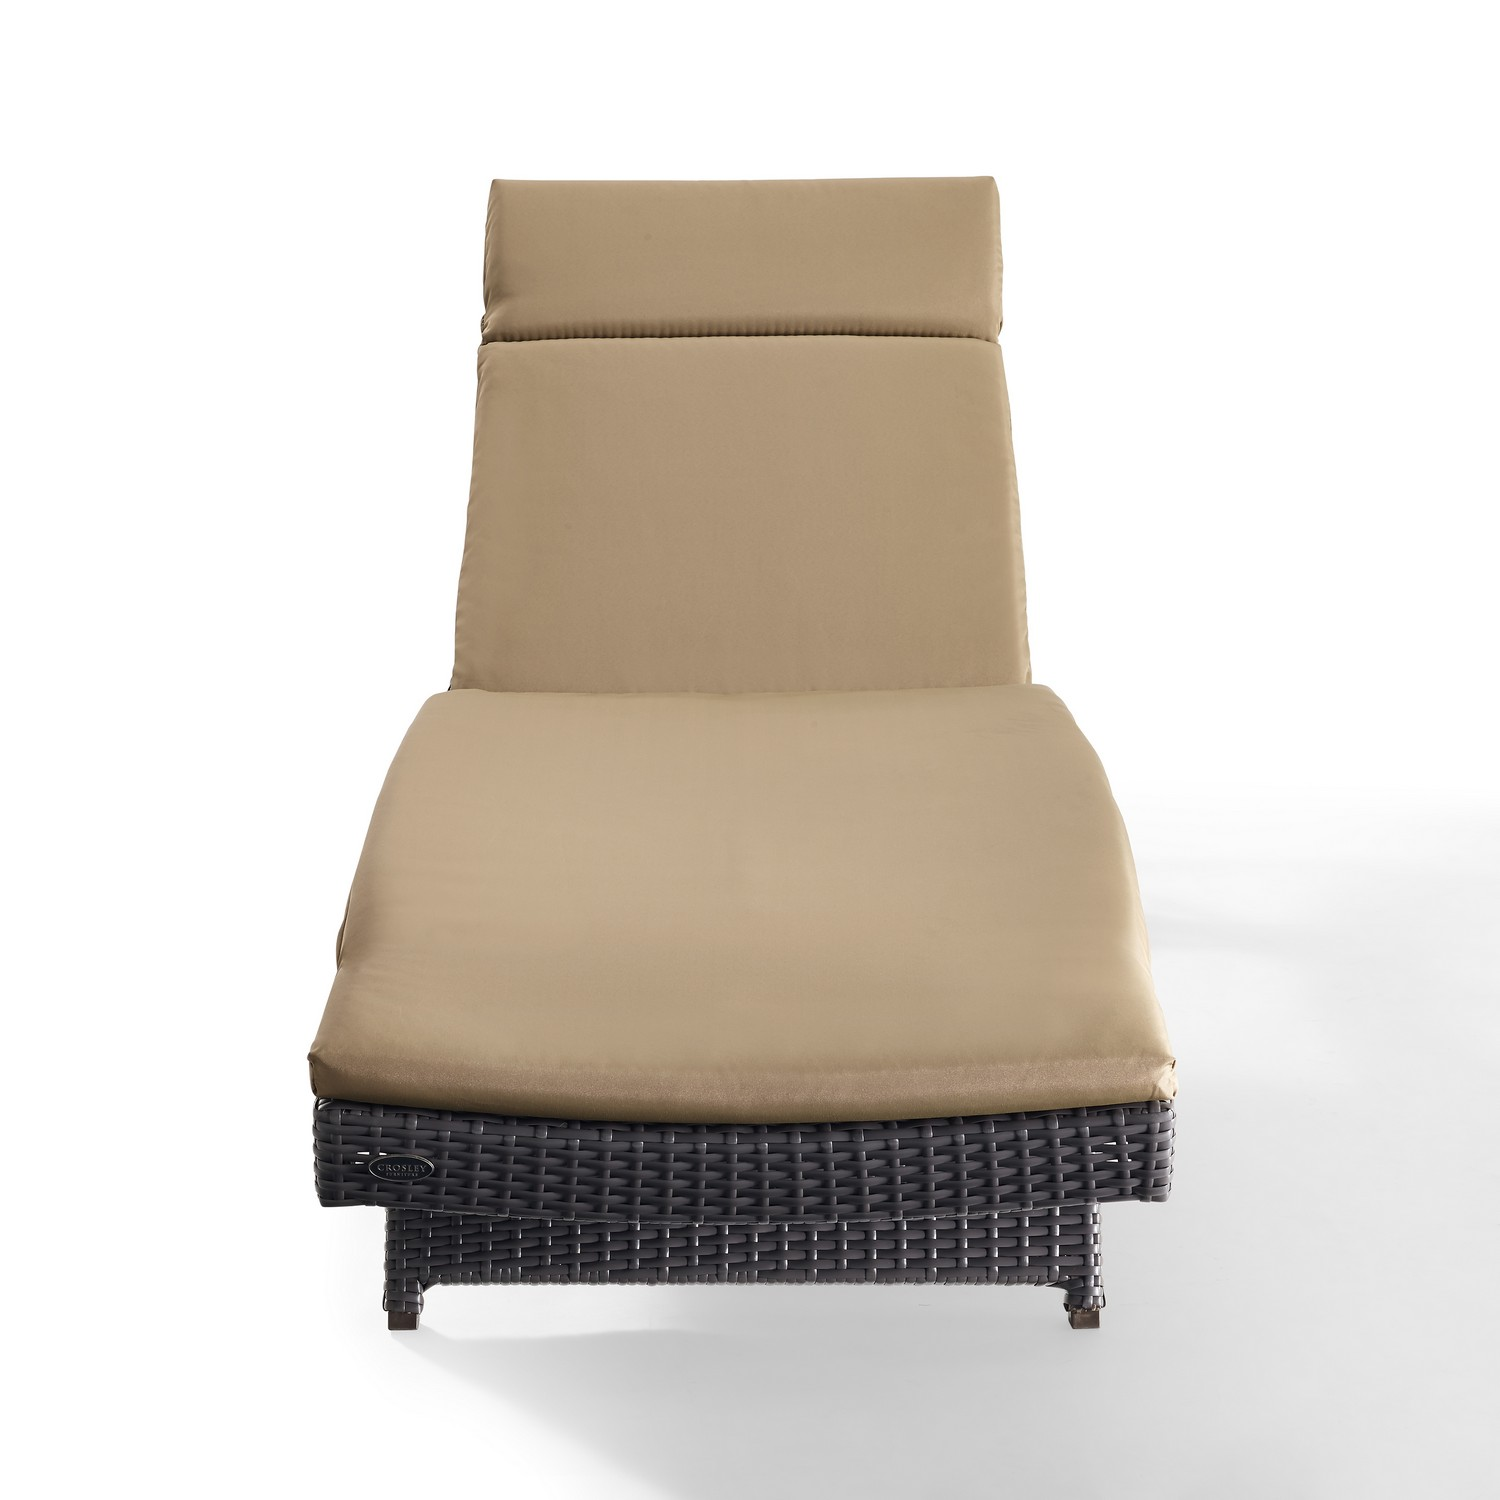 Crosley Biscayne Outdoor Wicker Chaise Lounge - Mocha/Brown